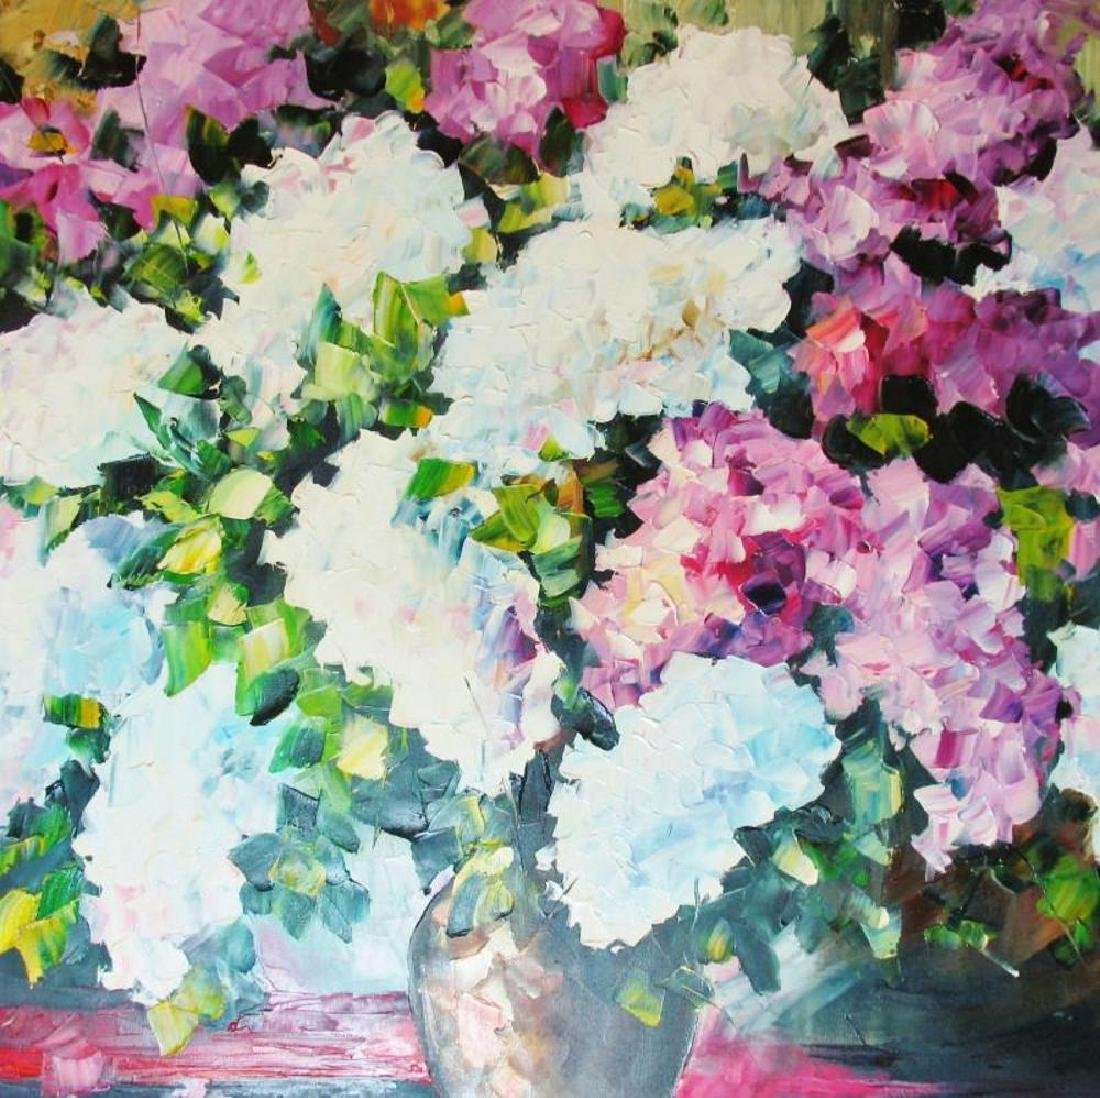 Violet White Textured Flowers Palette Knife Painting - 3